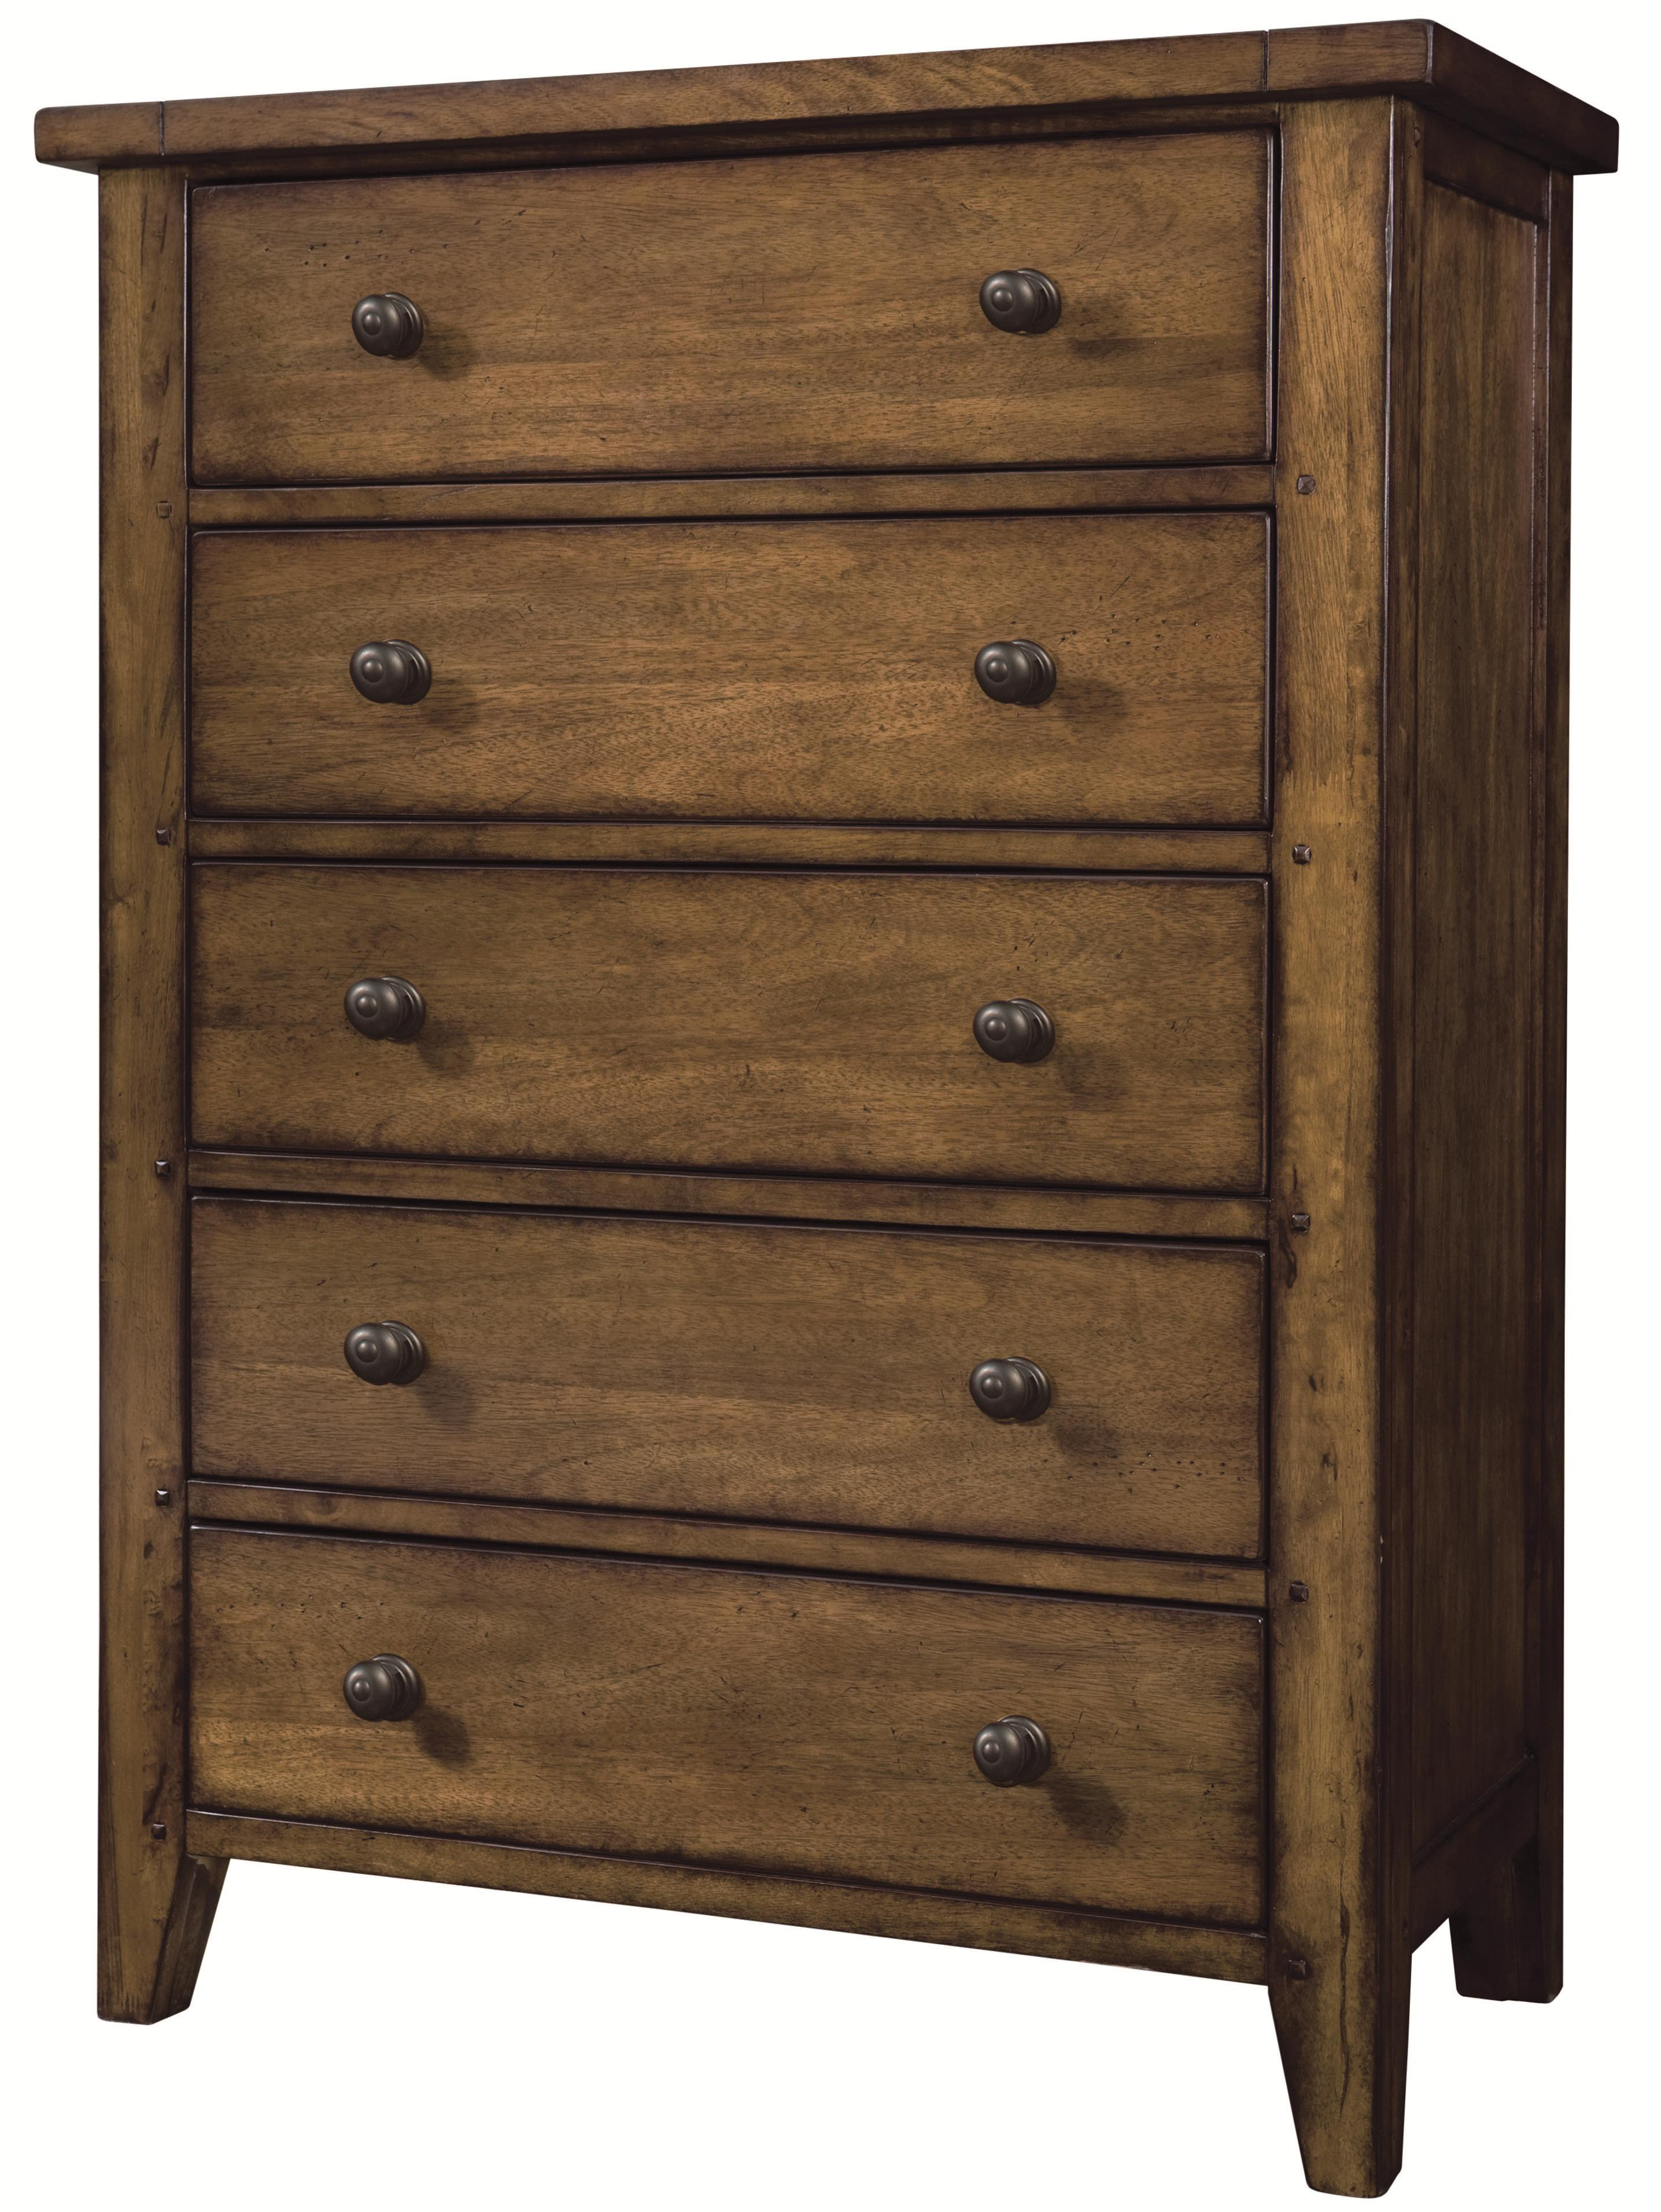 Aspenhome Cross Country Drawer Chest - Item Number: IMR-456